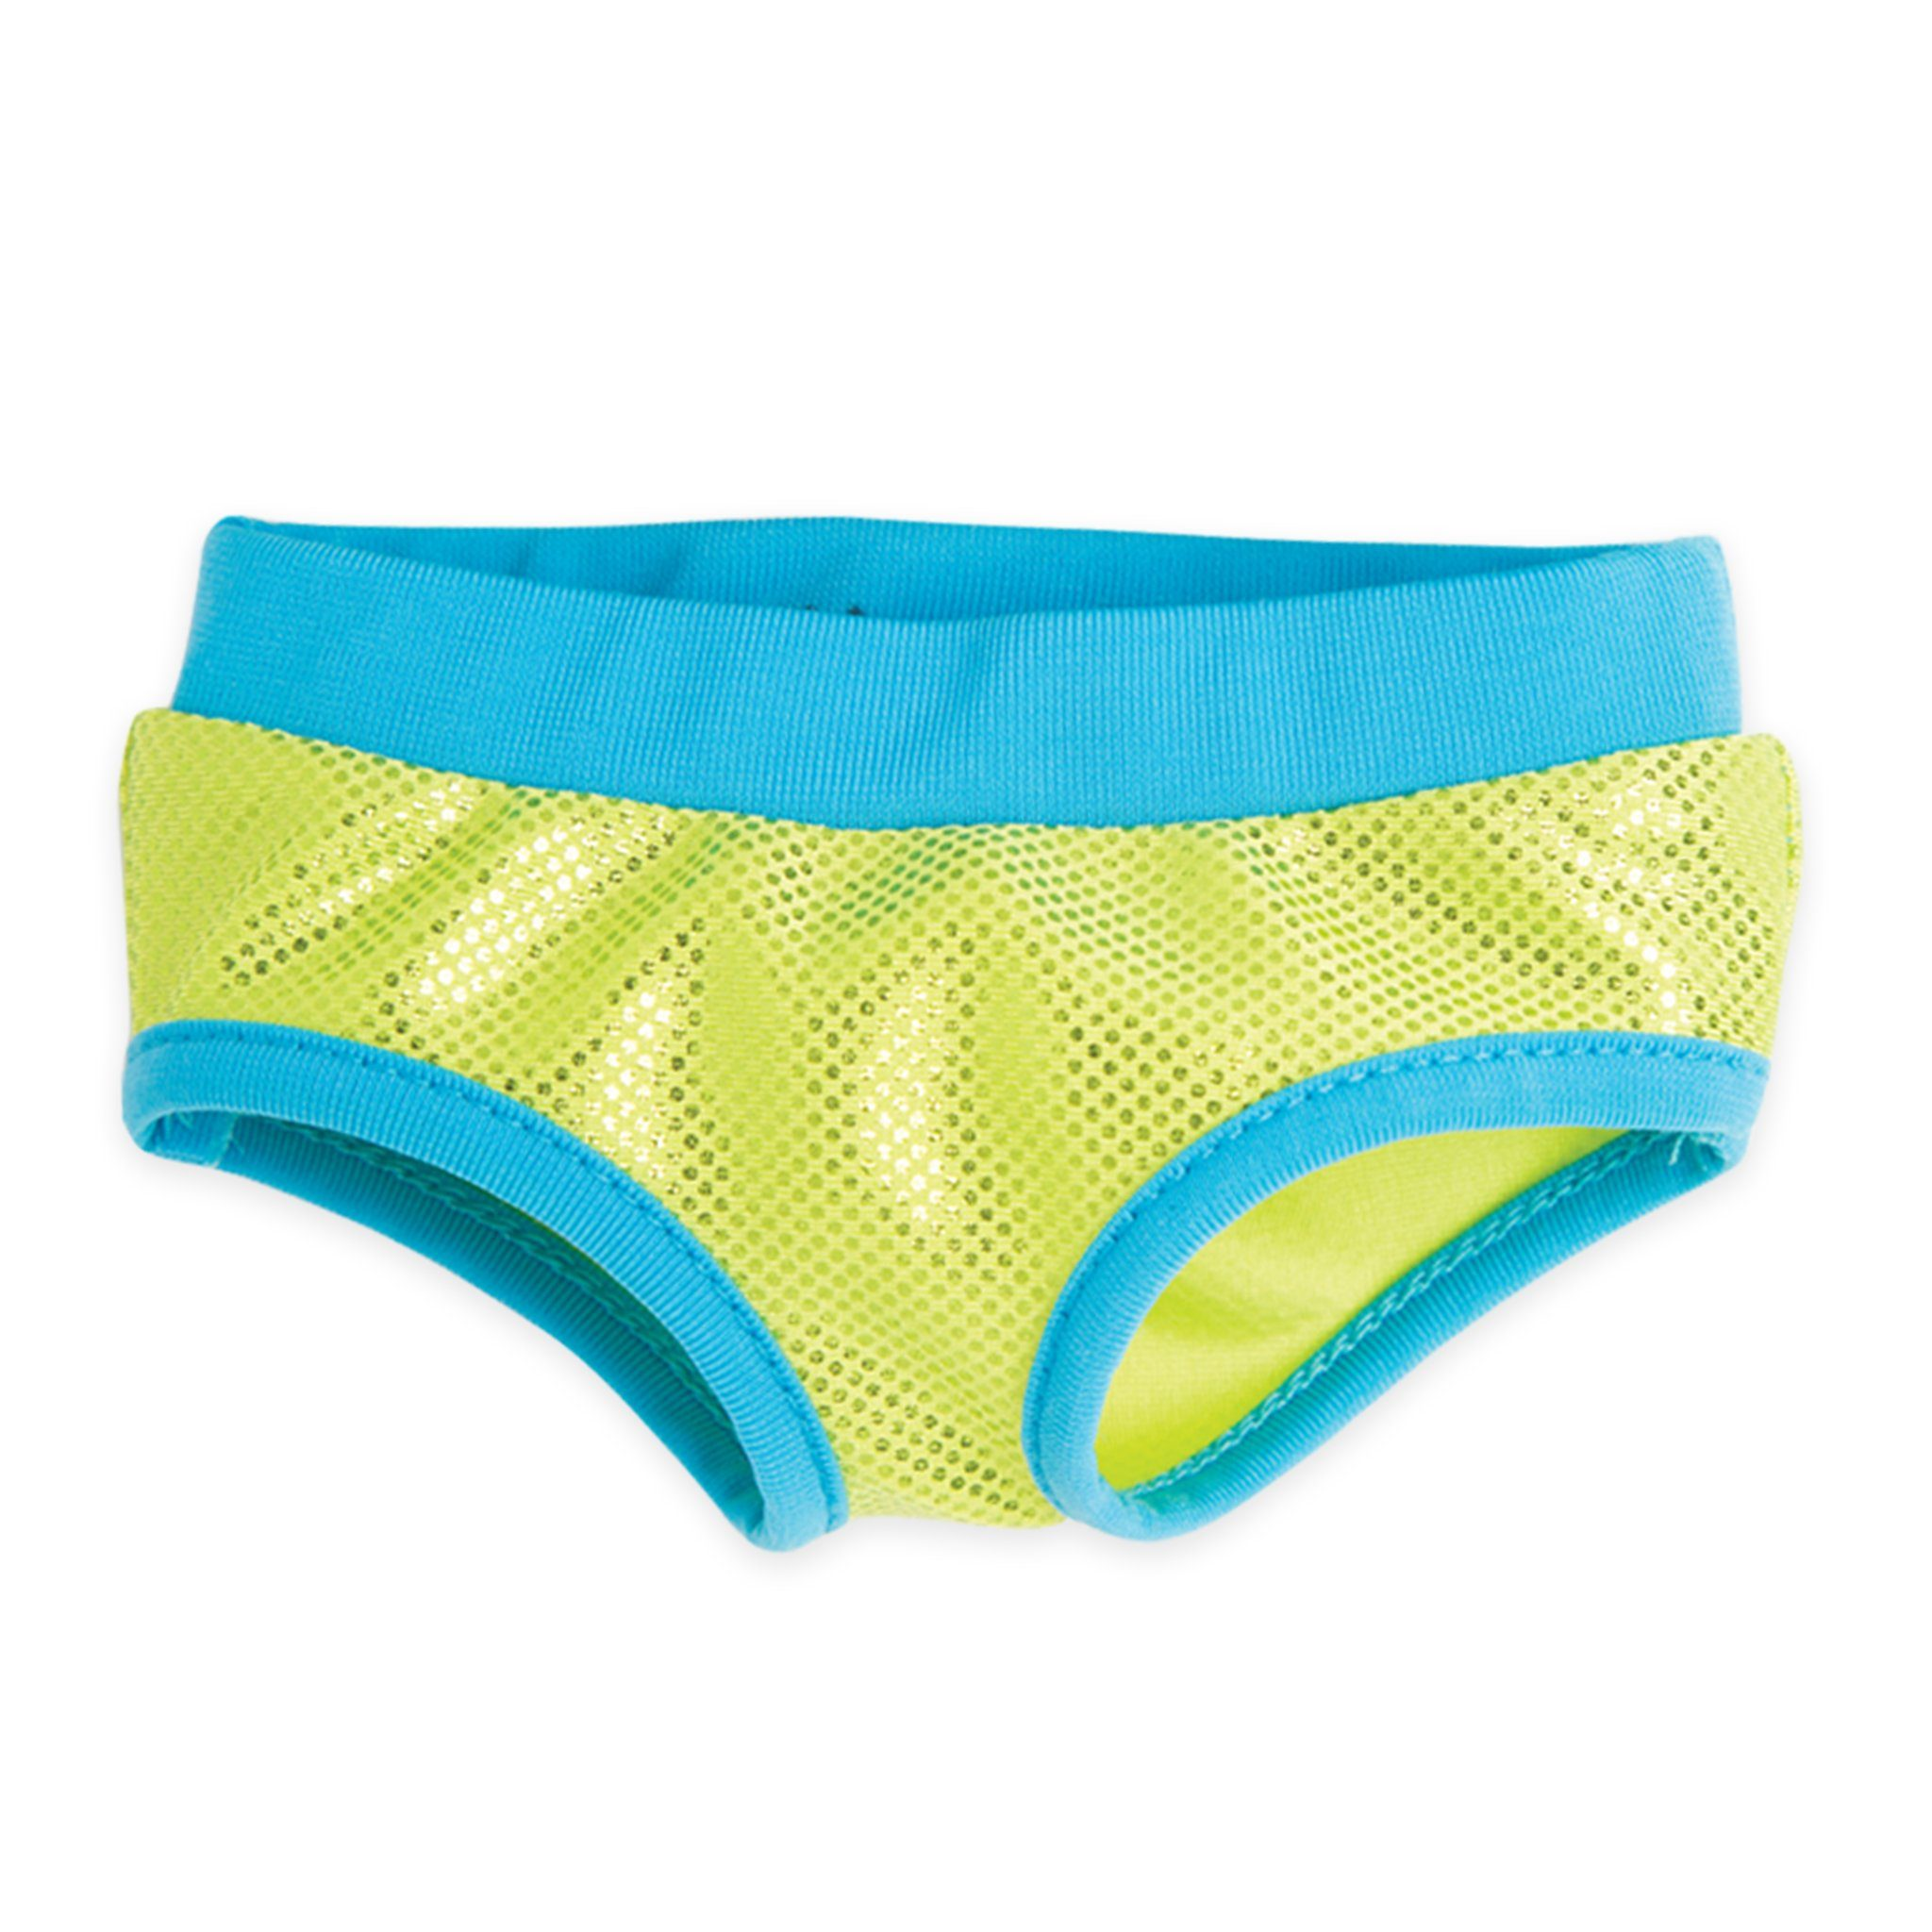 West Coast Waterwear sparkly green bathing suit bottom with blue trim fits all 18 inch dolls.